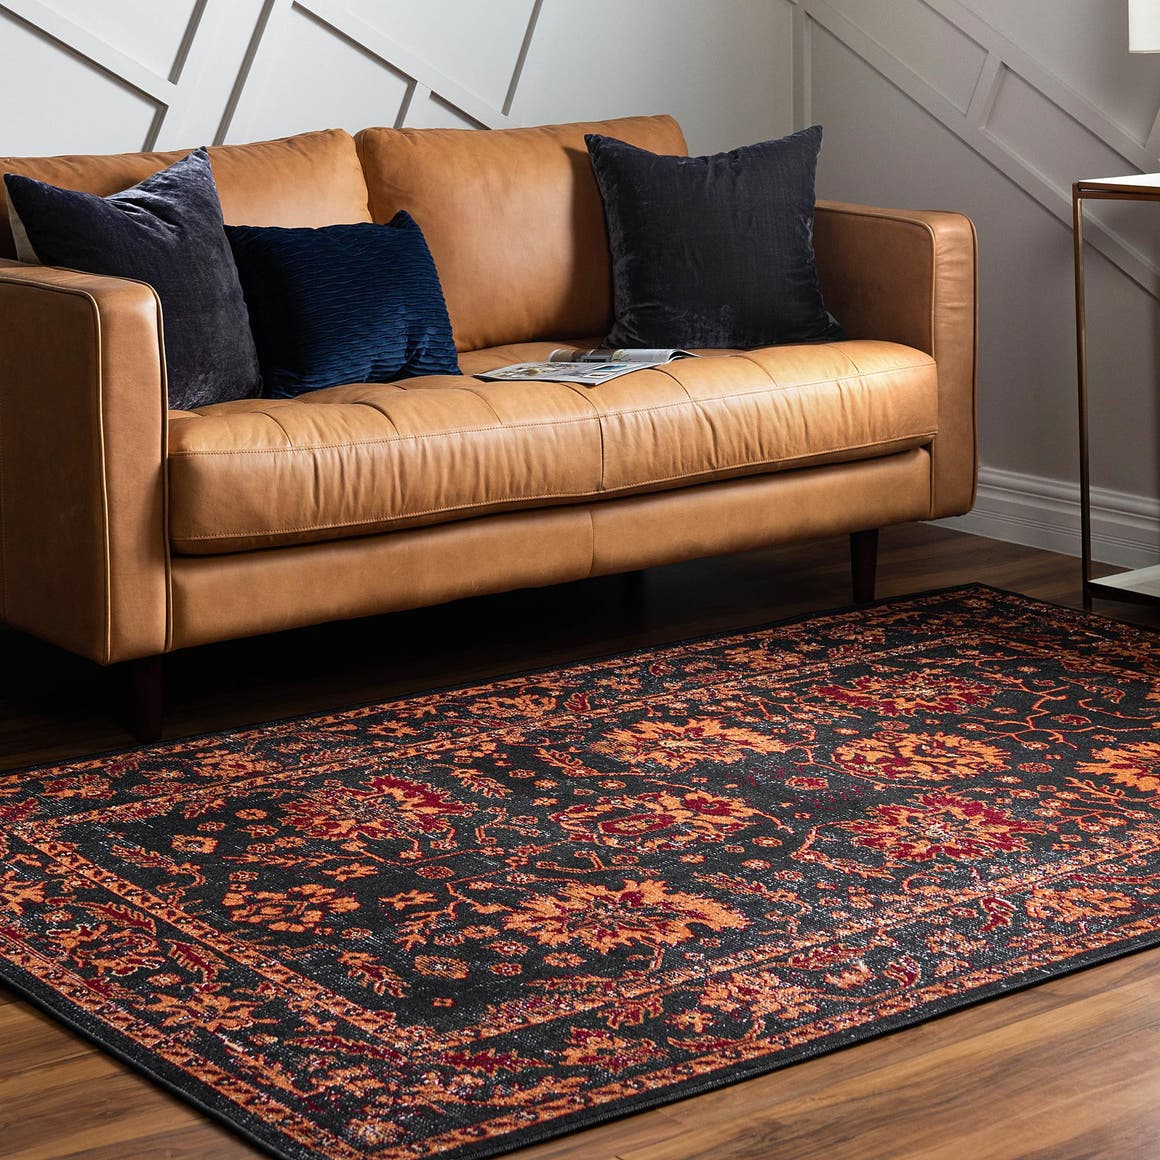 Rugs.Com Lucerne Collection Area Rug – 8' x 10' Black ...